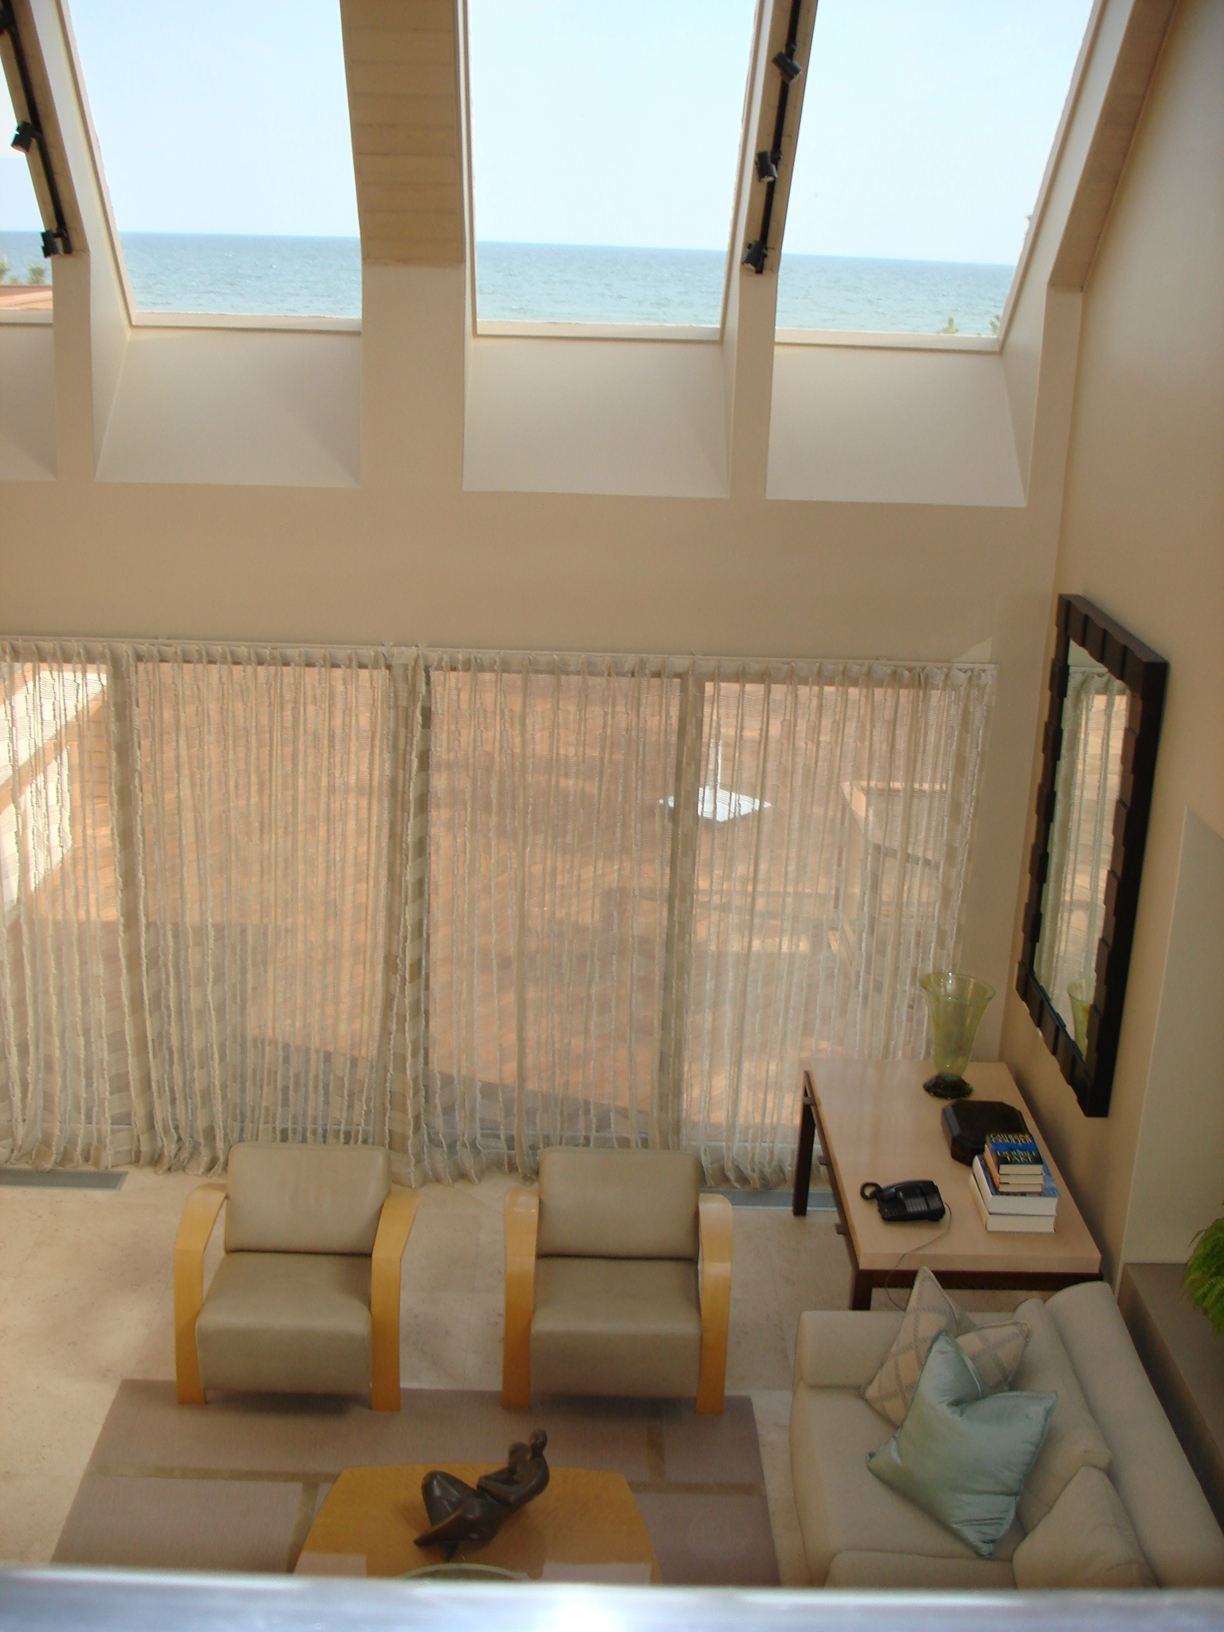 Above view of the living room, windows overlooking the sea